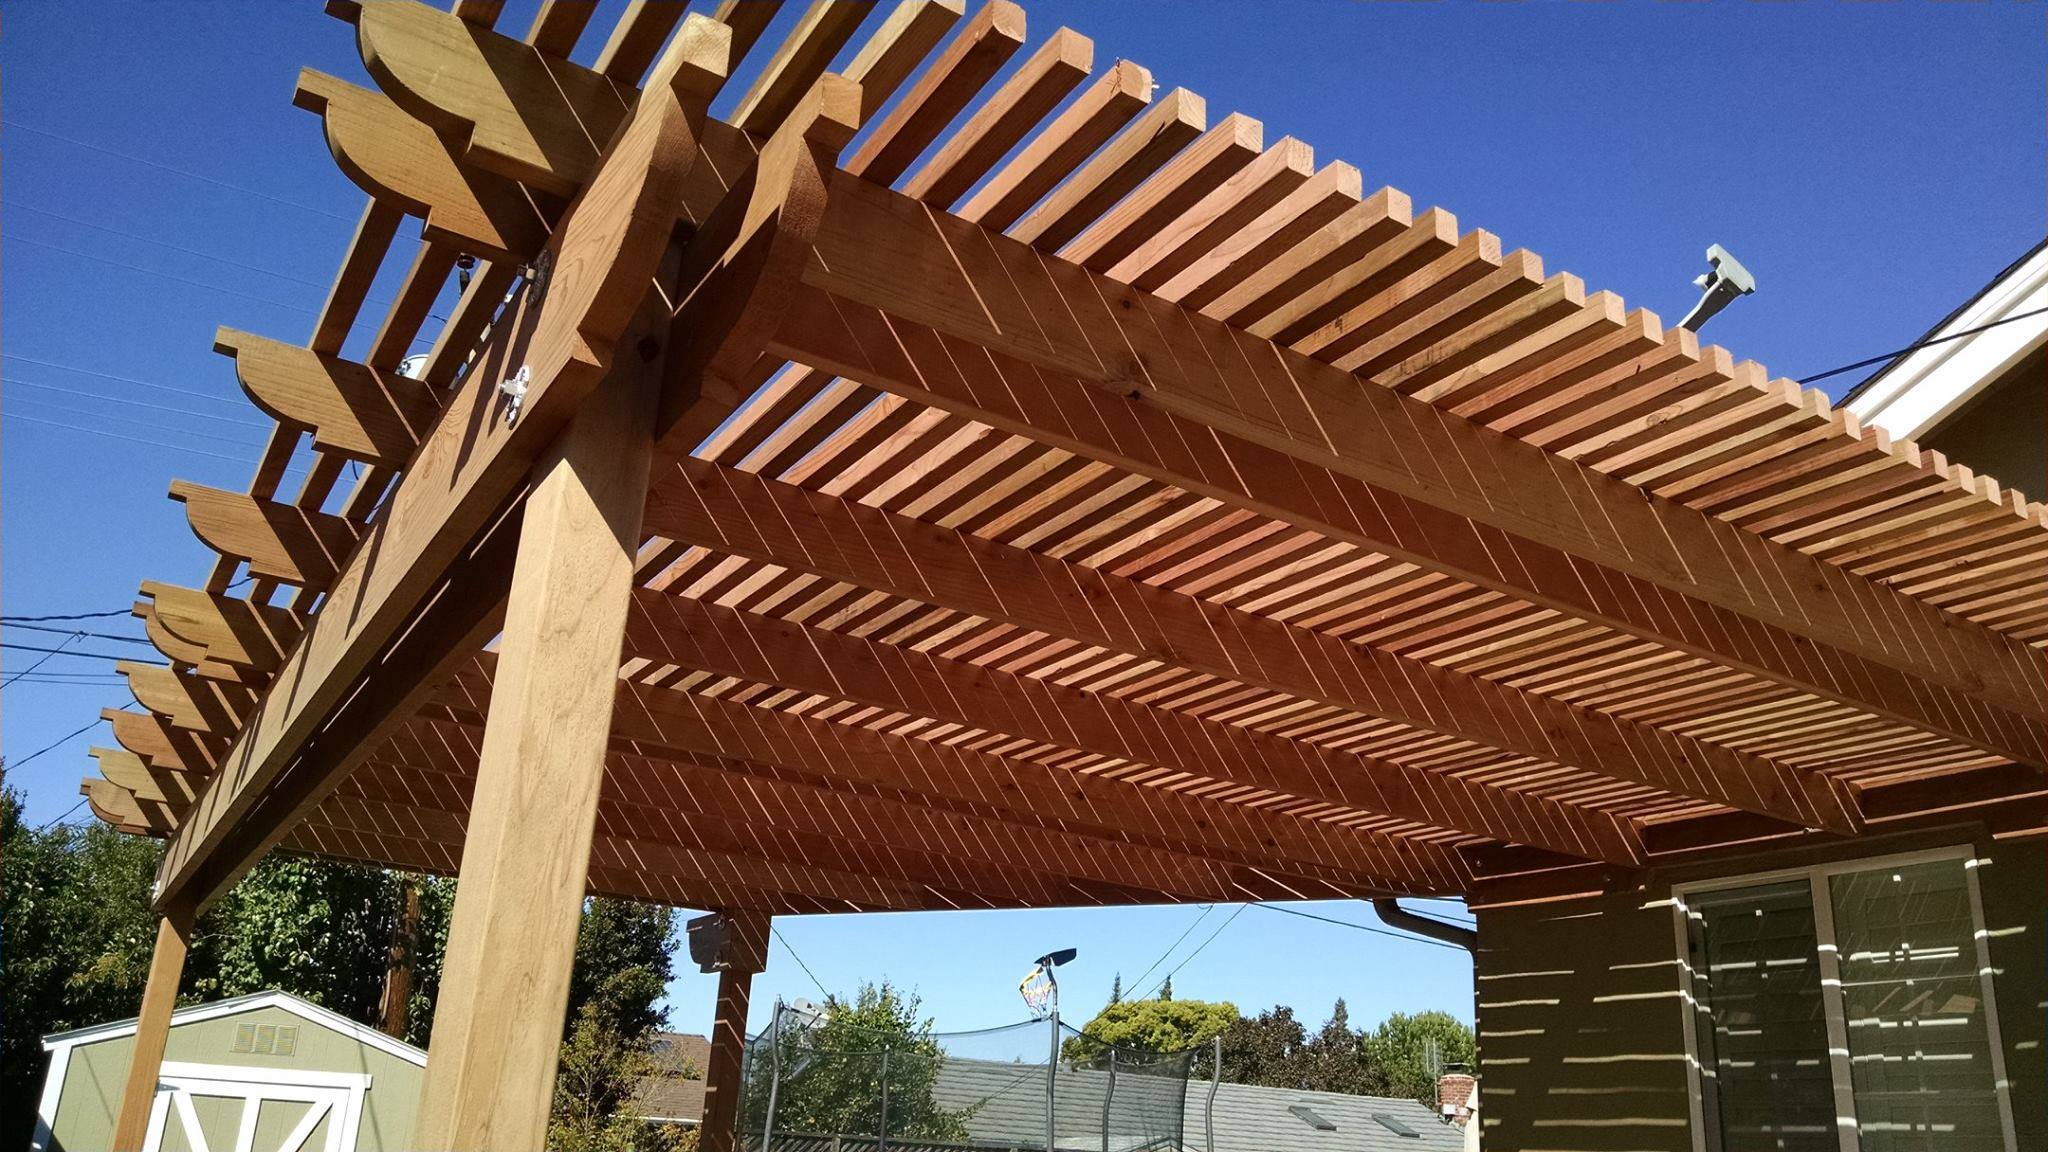 Pergola focusing on the 2x2 Slats